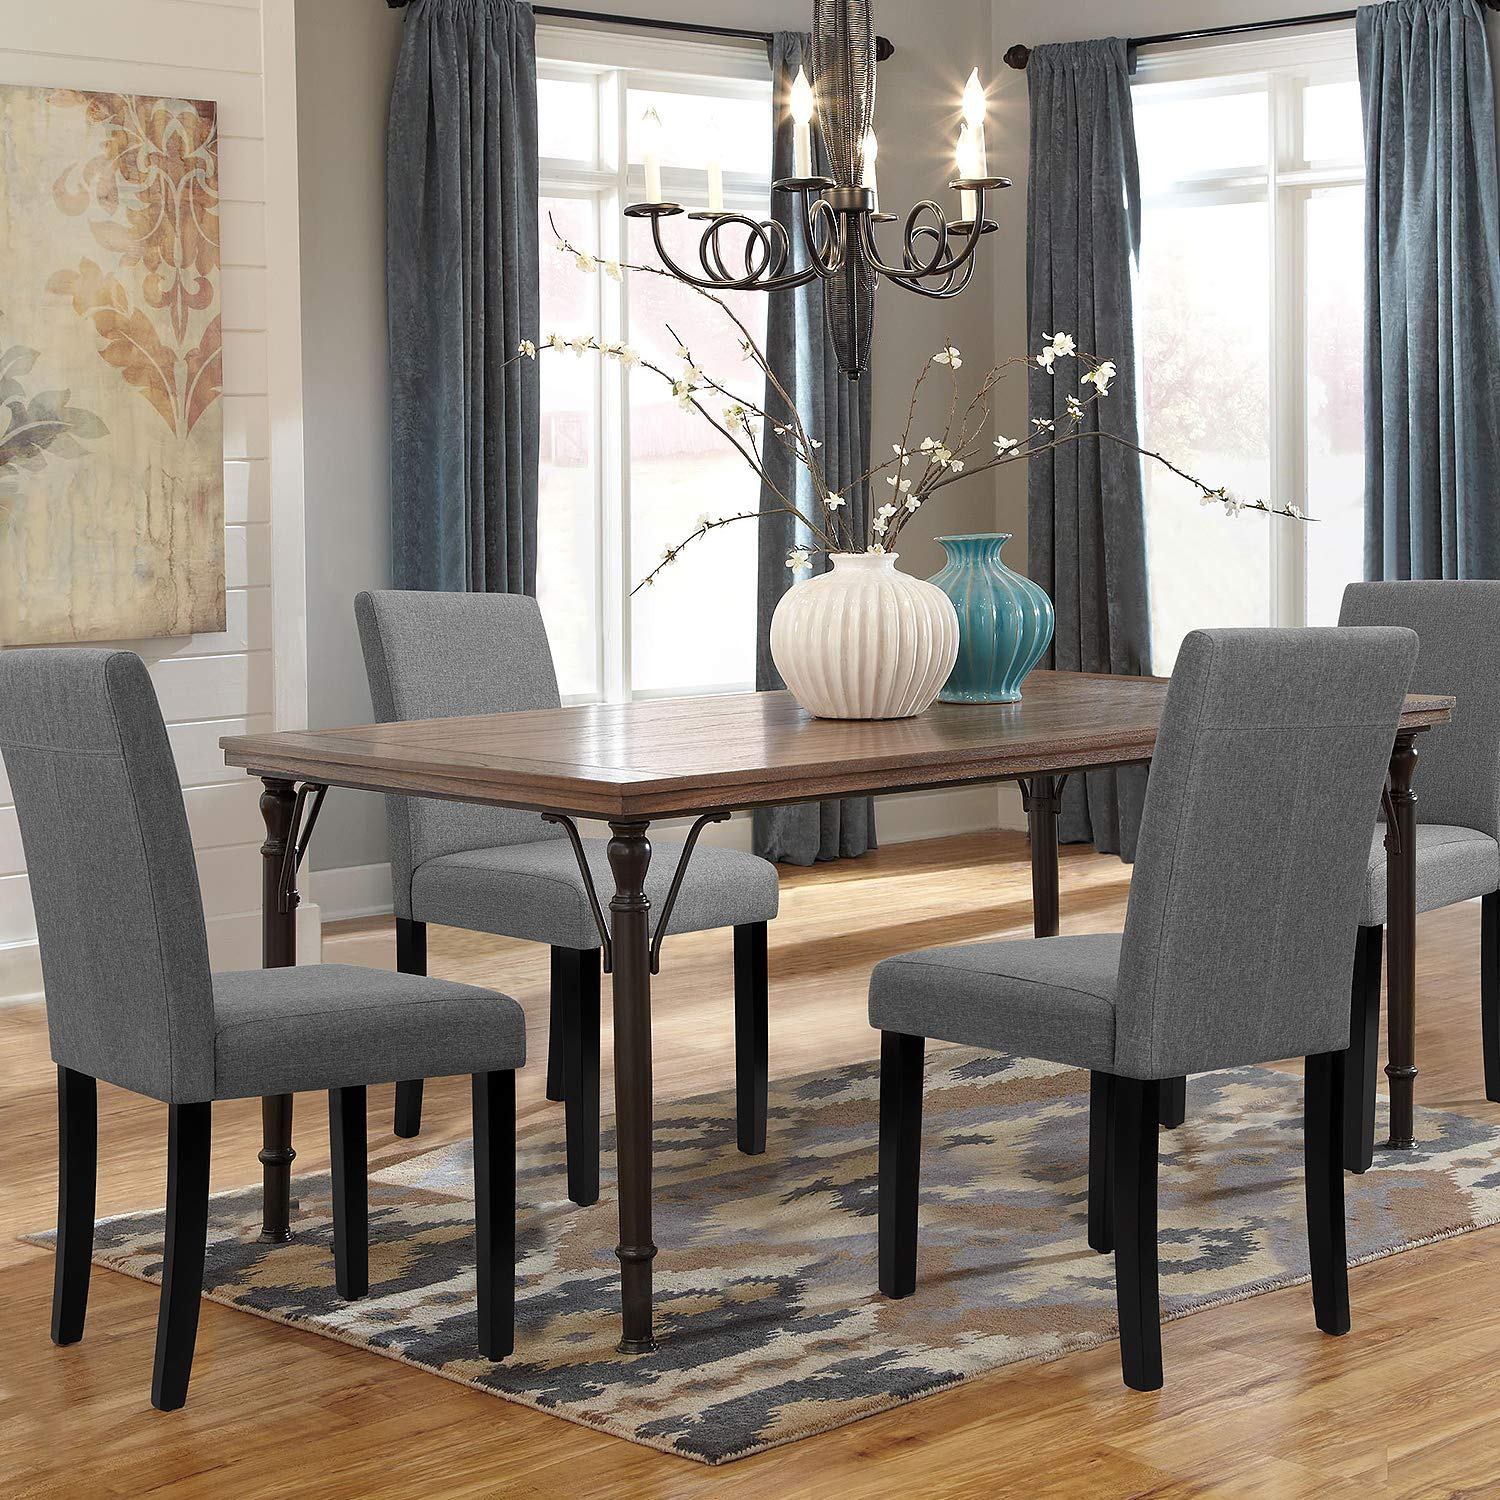 walnew set of 4 modern upholstered dining chairs with wood legs gray